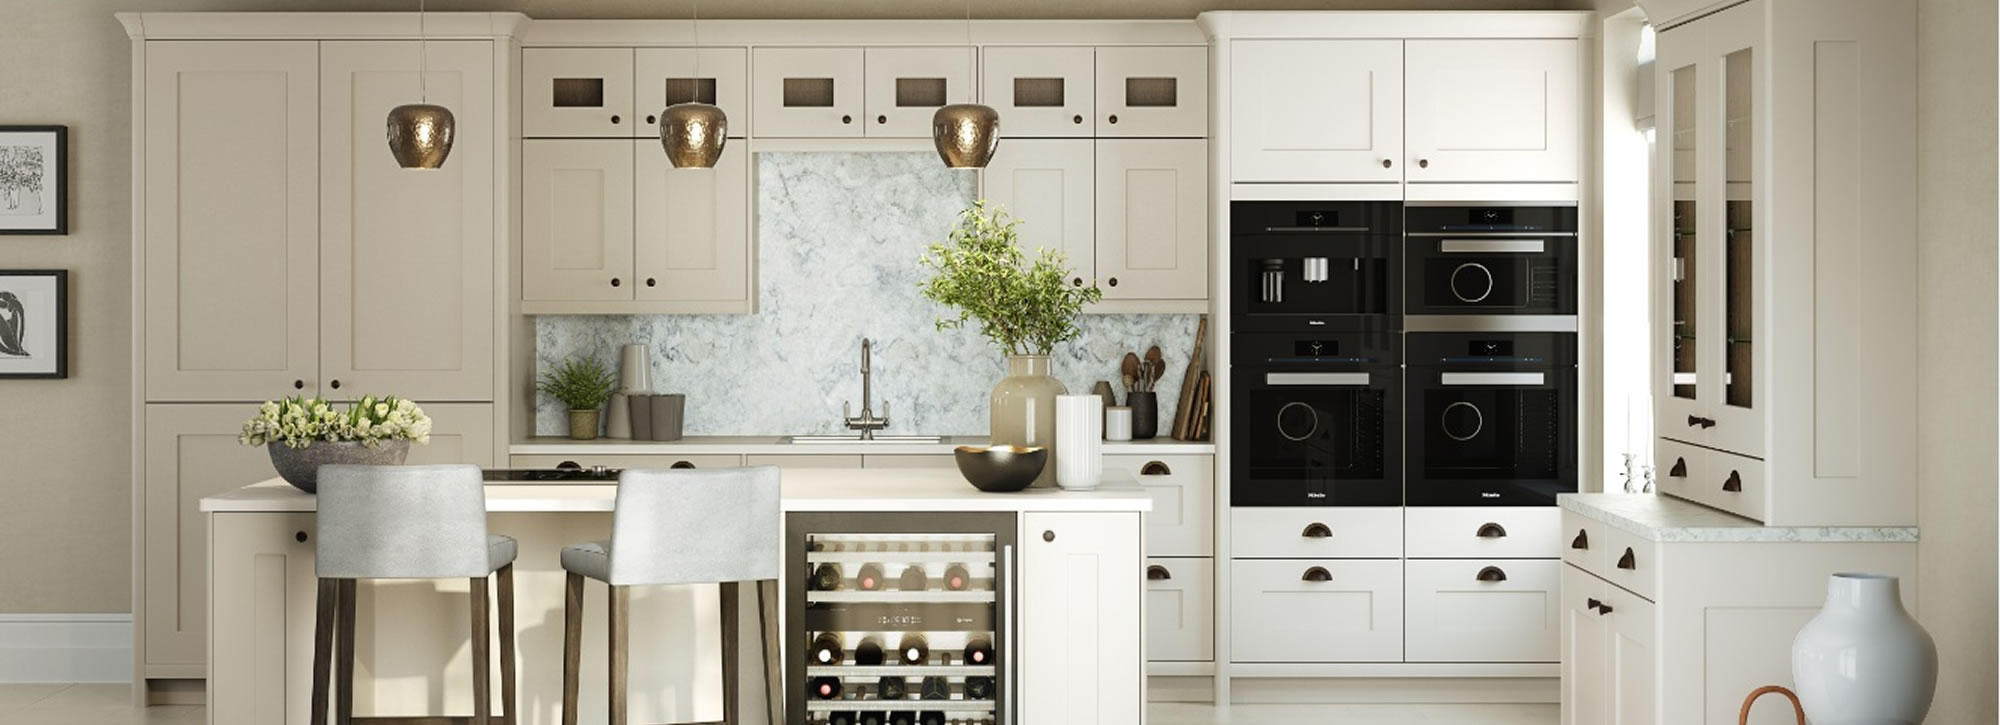 Painted kitchen design and installation surrey raycross for Kitchen cabinets surrey